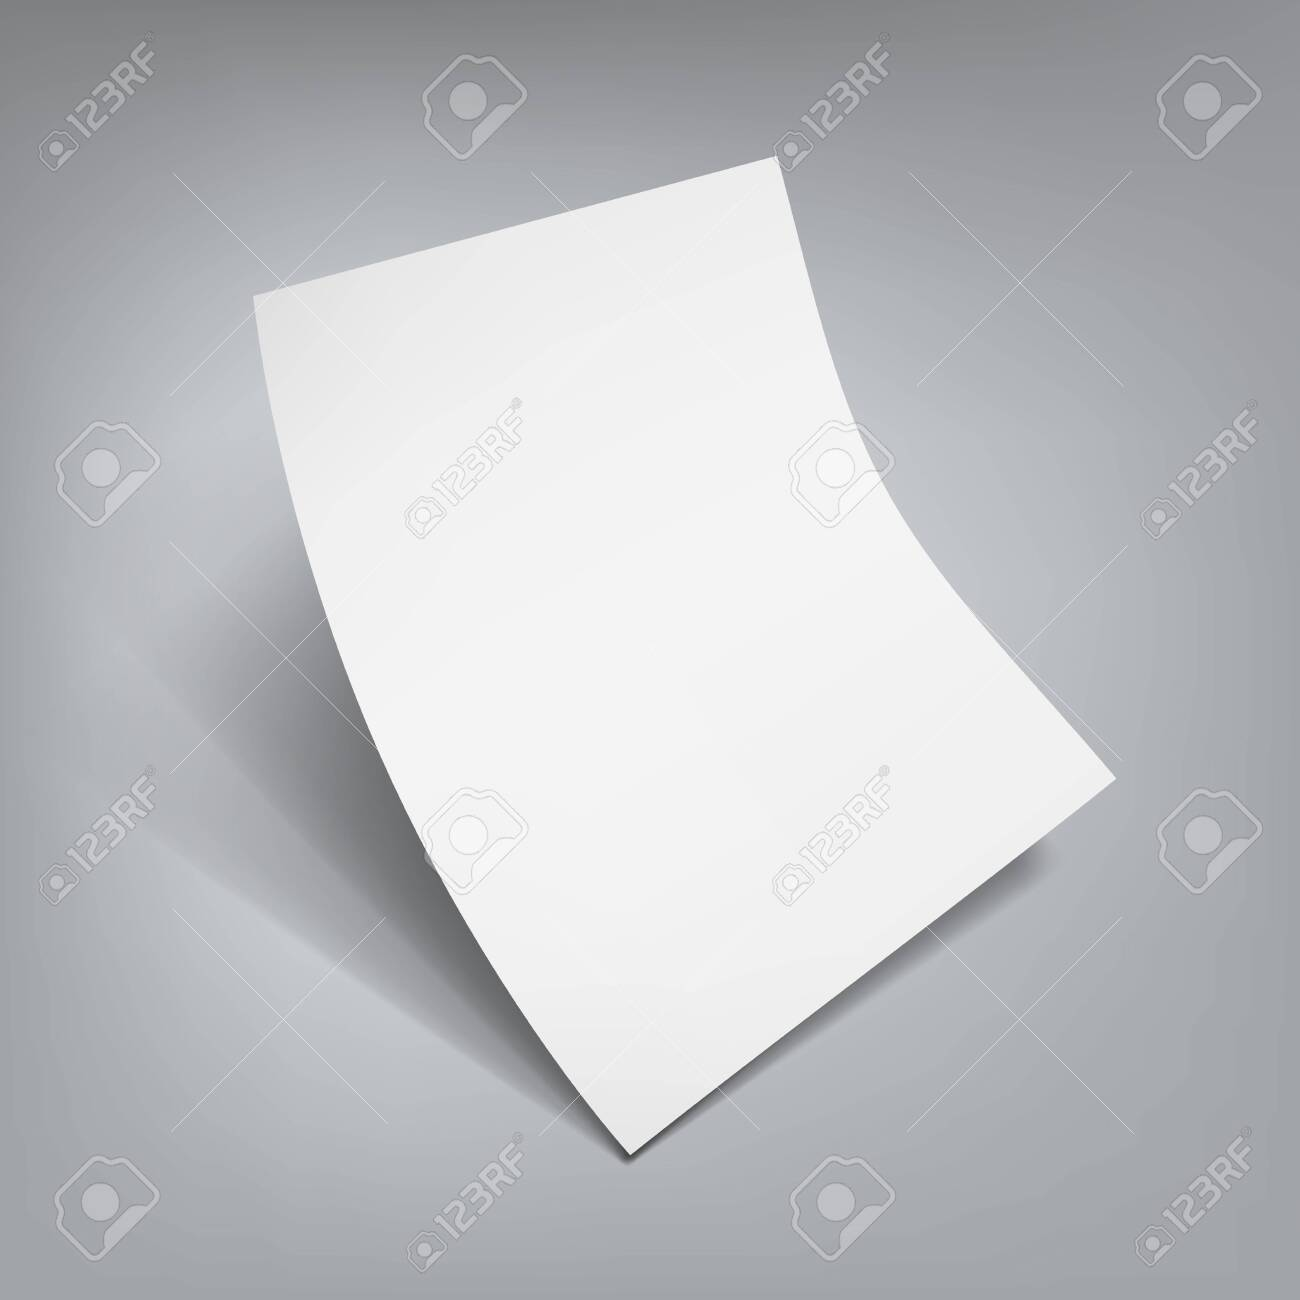 White Clear Flying Sheet Of Paper With Shadow - 136968512